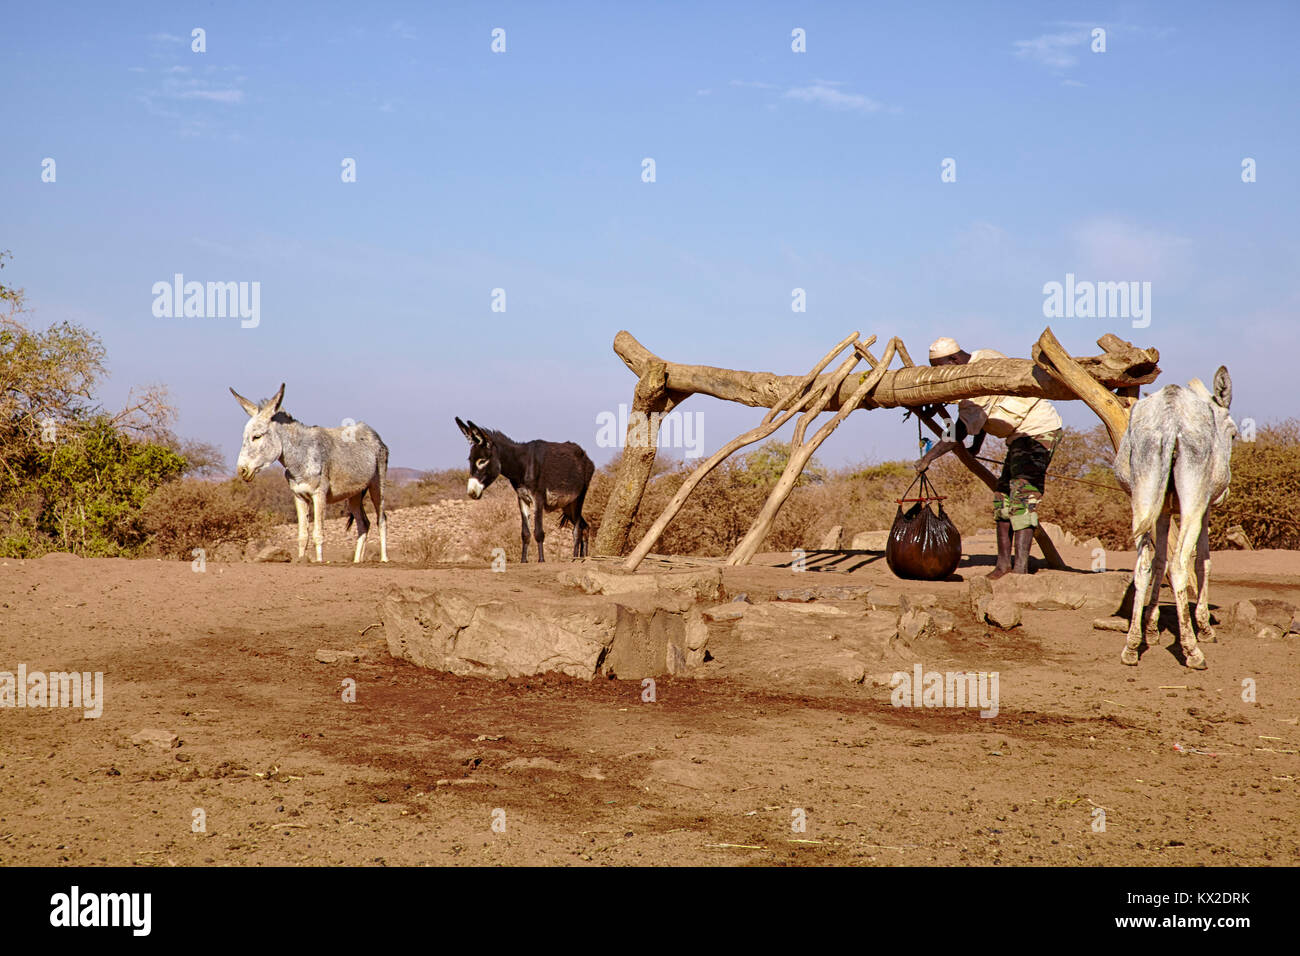 Man fetching water from a well with a donkey near Naqa, Sudan (North Sudan), Africa - Stock Image